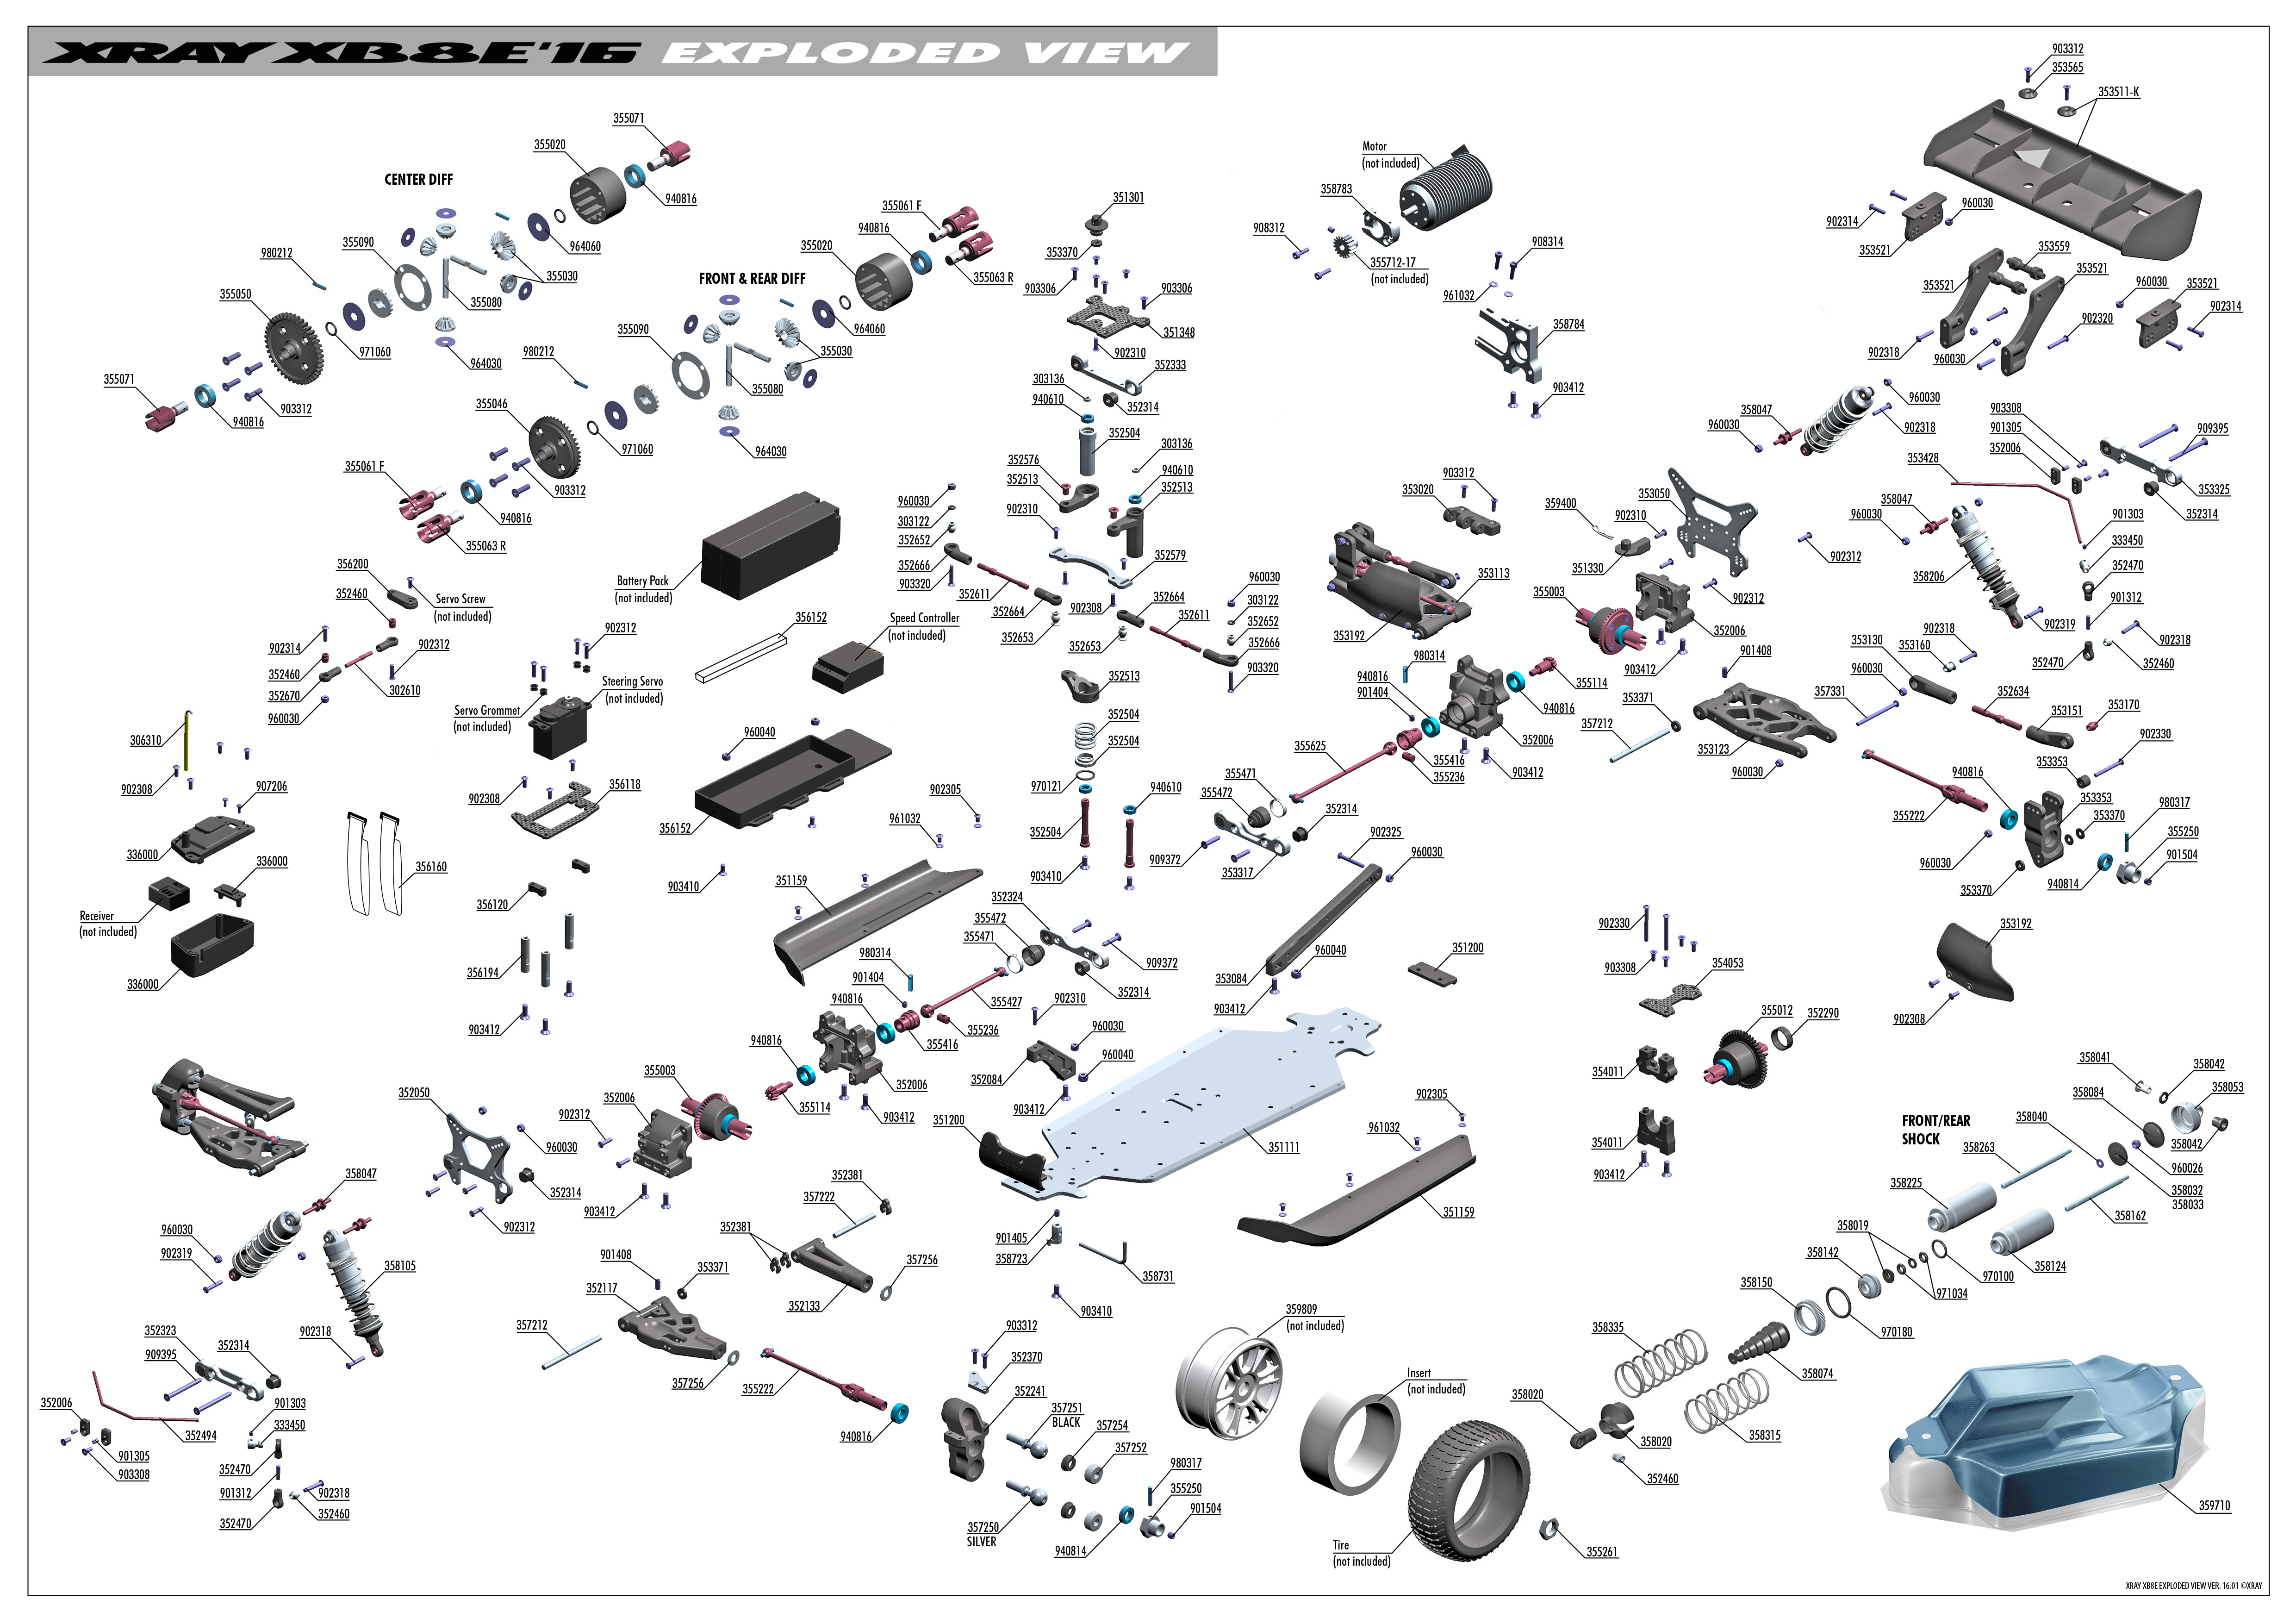 99 Ford Mustang Engine 3 8 further Image N 3 0 Mitsubishi Montero Engine likewise Electrical Diagram For Chevy Hhr besides Polaris Sportsman 500 Parts Catalog moreover 2003 Subaru Forester Bumper Parts. on honda accord88 radiator diagram and schematics